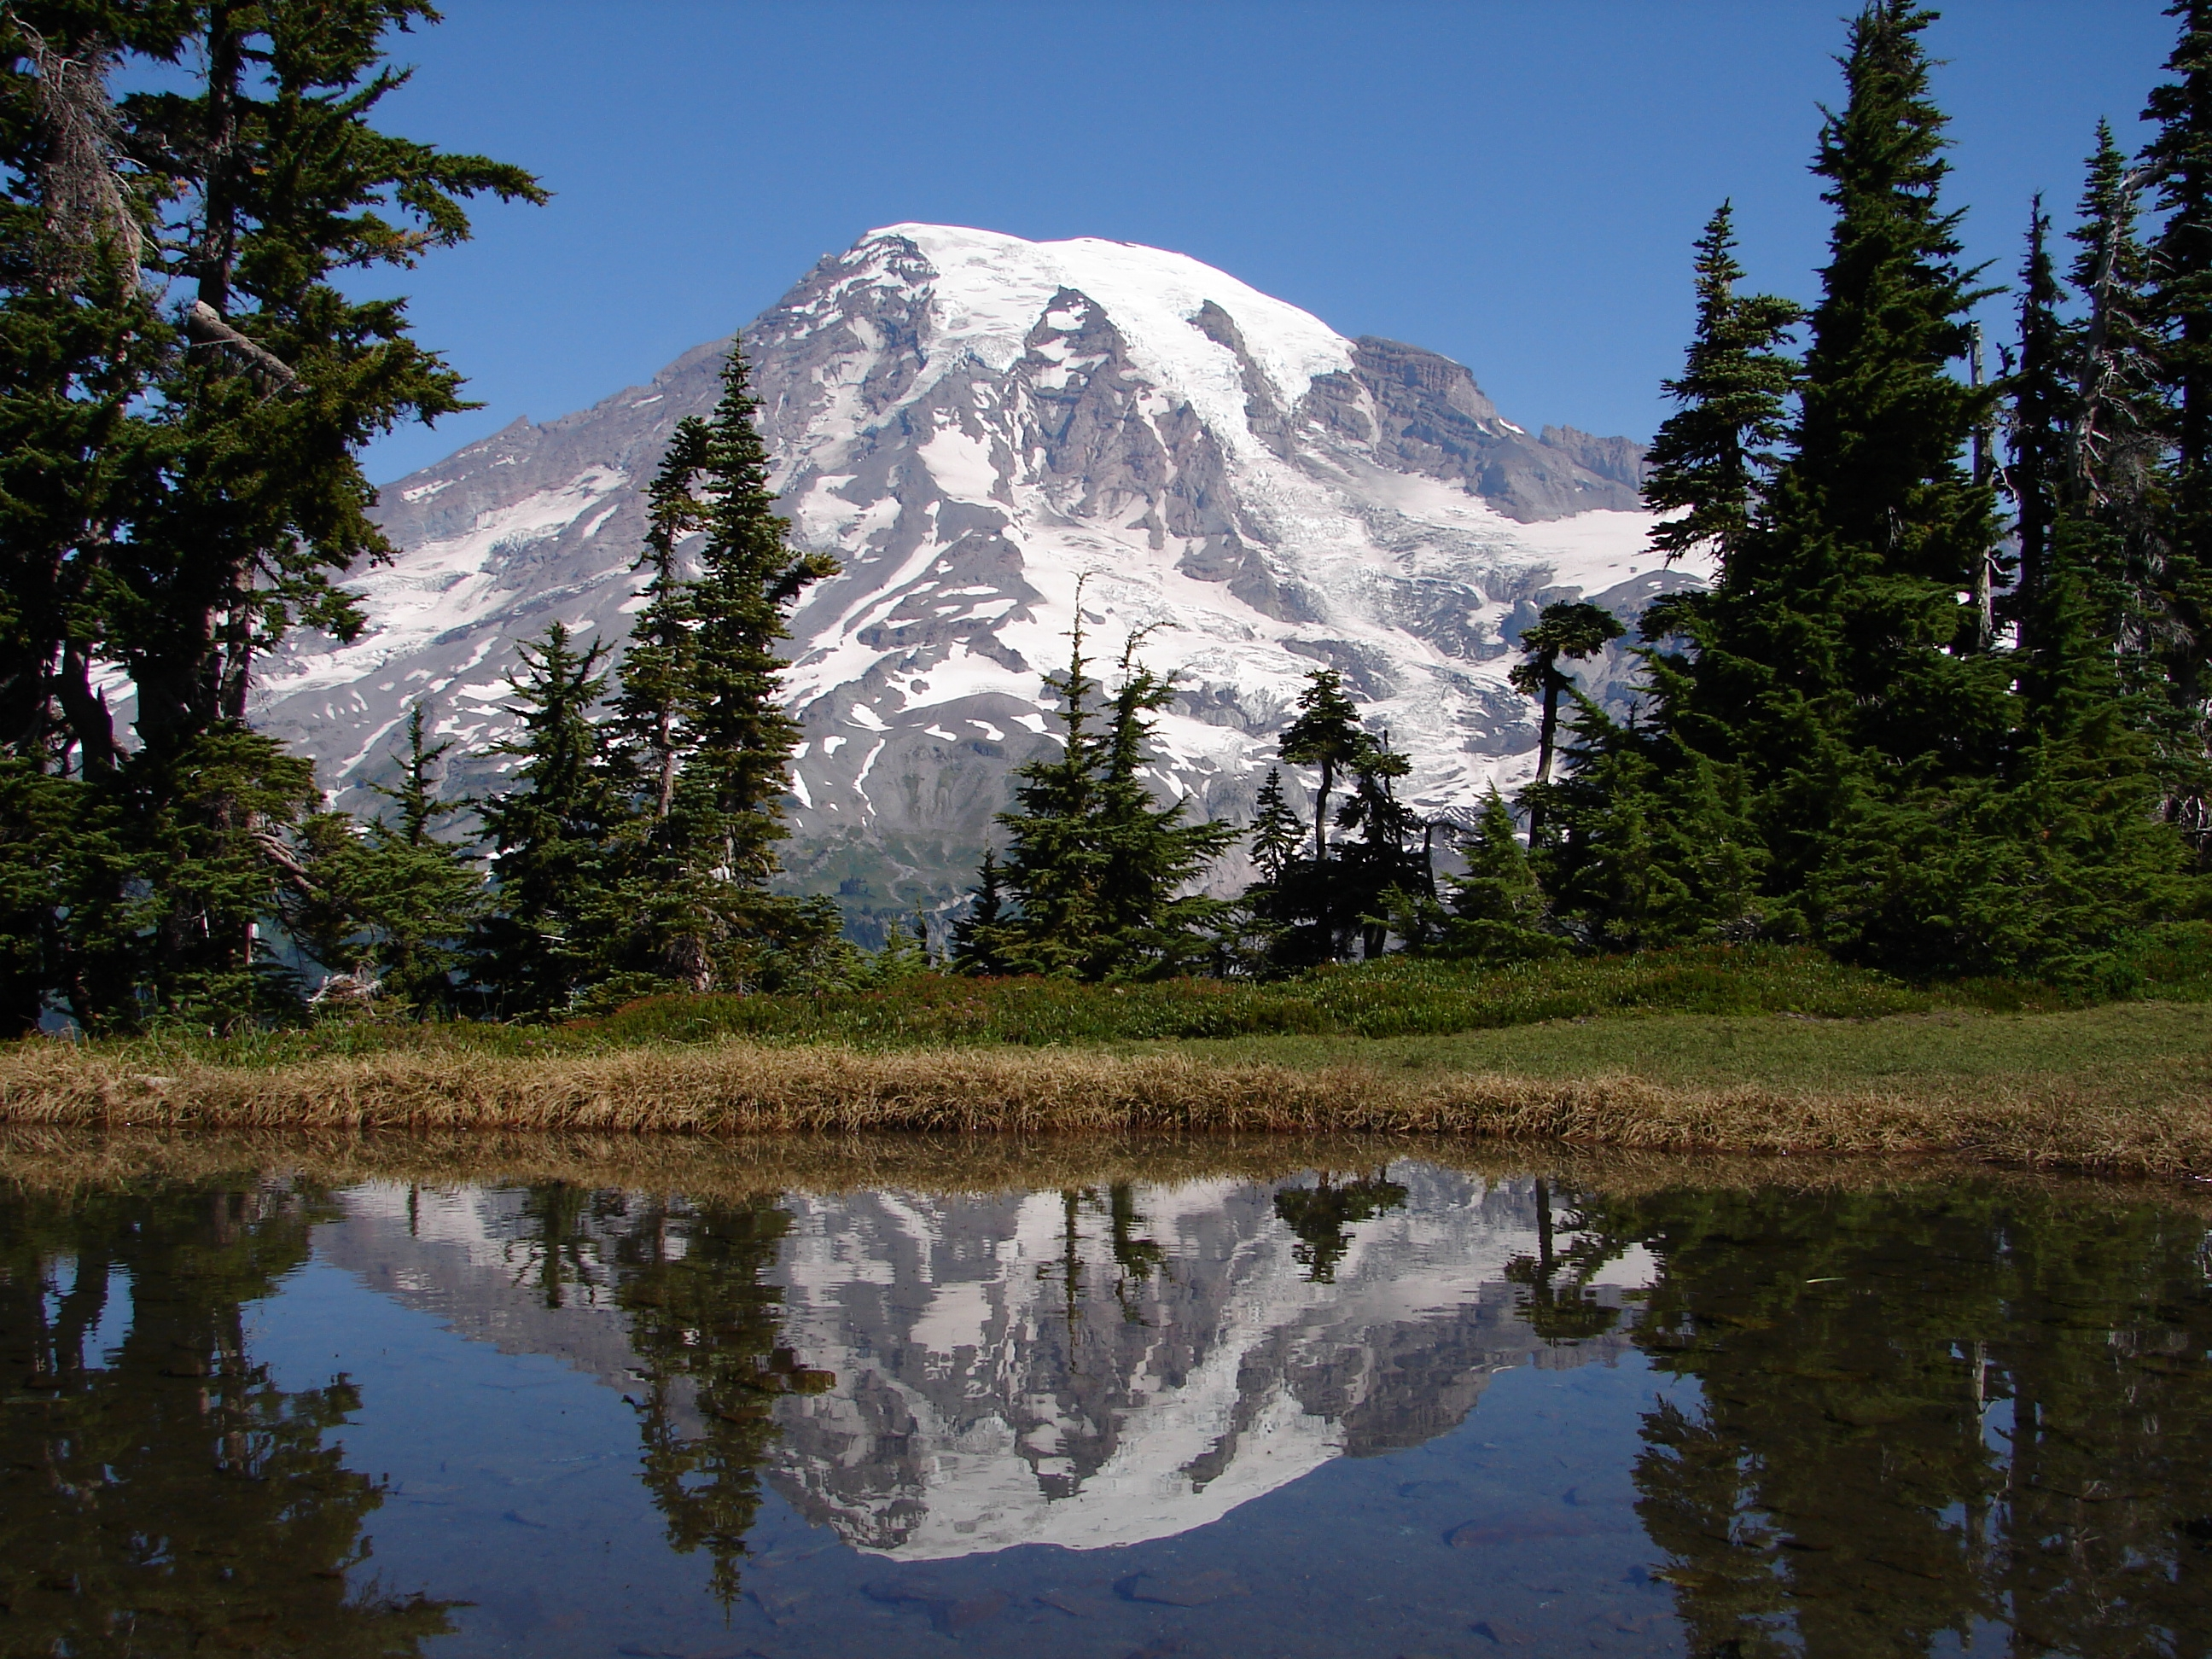 mount rainier milfs dating site Volcanic history  mount rainier has a long eruptive history dating back perhaps a million years most of the cone is made up of thin lava flows interspersed with volcanic ash and mudflows.